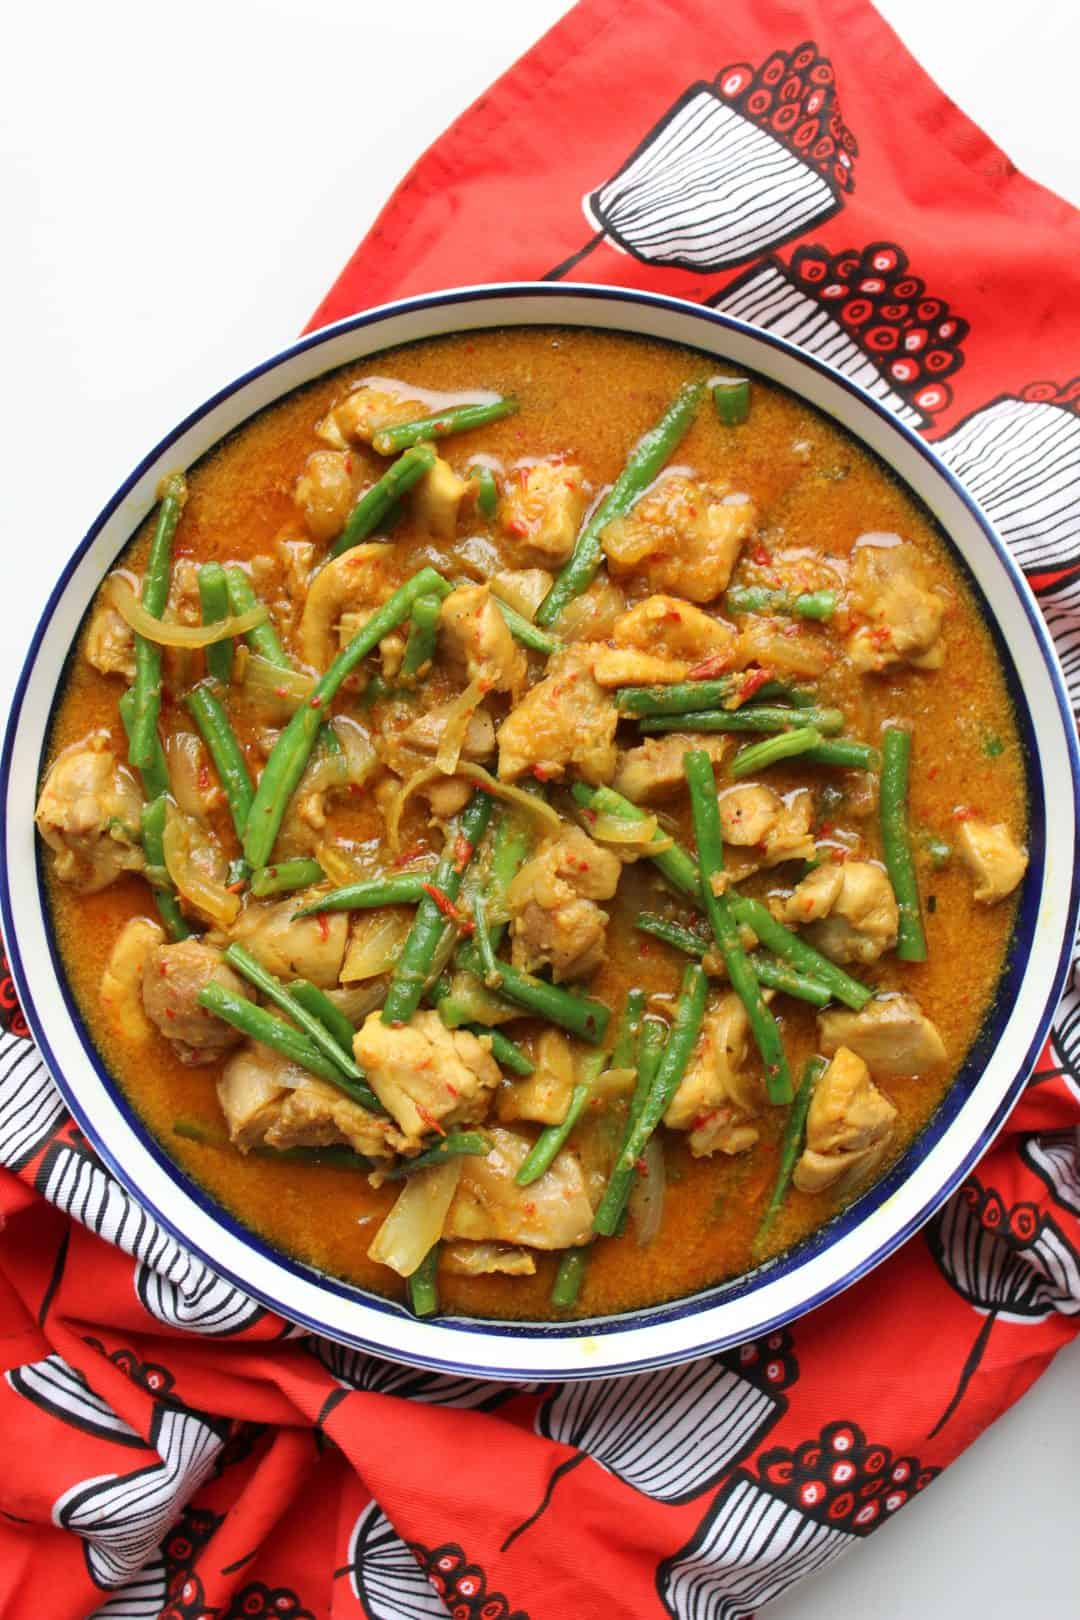 Gordon Ramsay's Malaysian Chicken - Slow The Cook Down